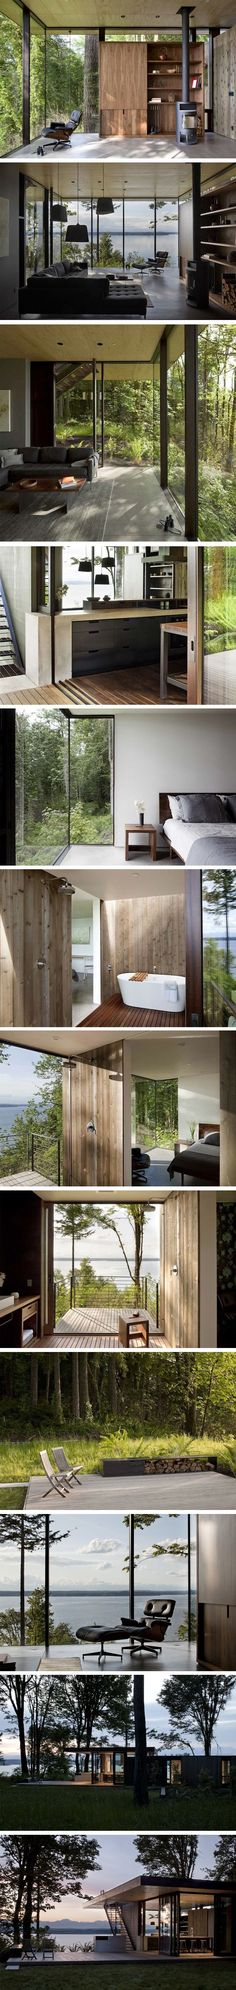 Case-Inlet-Retreat-MWWorks-Architecture+Design-2